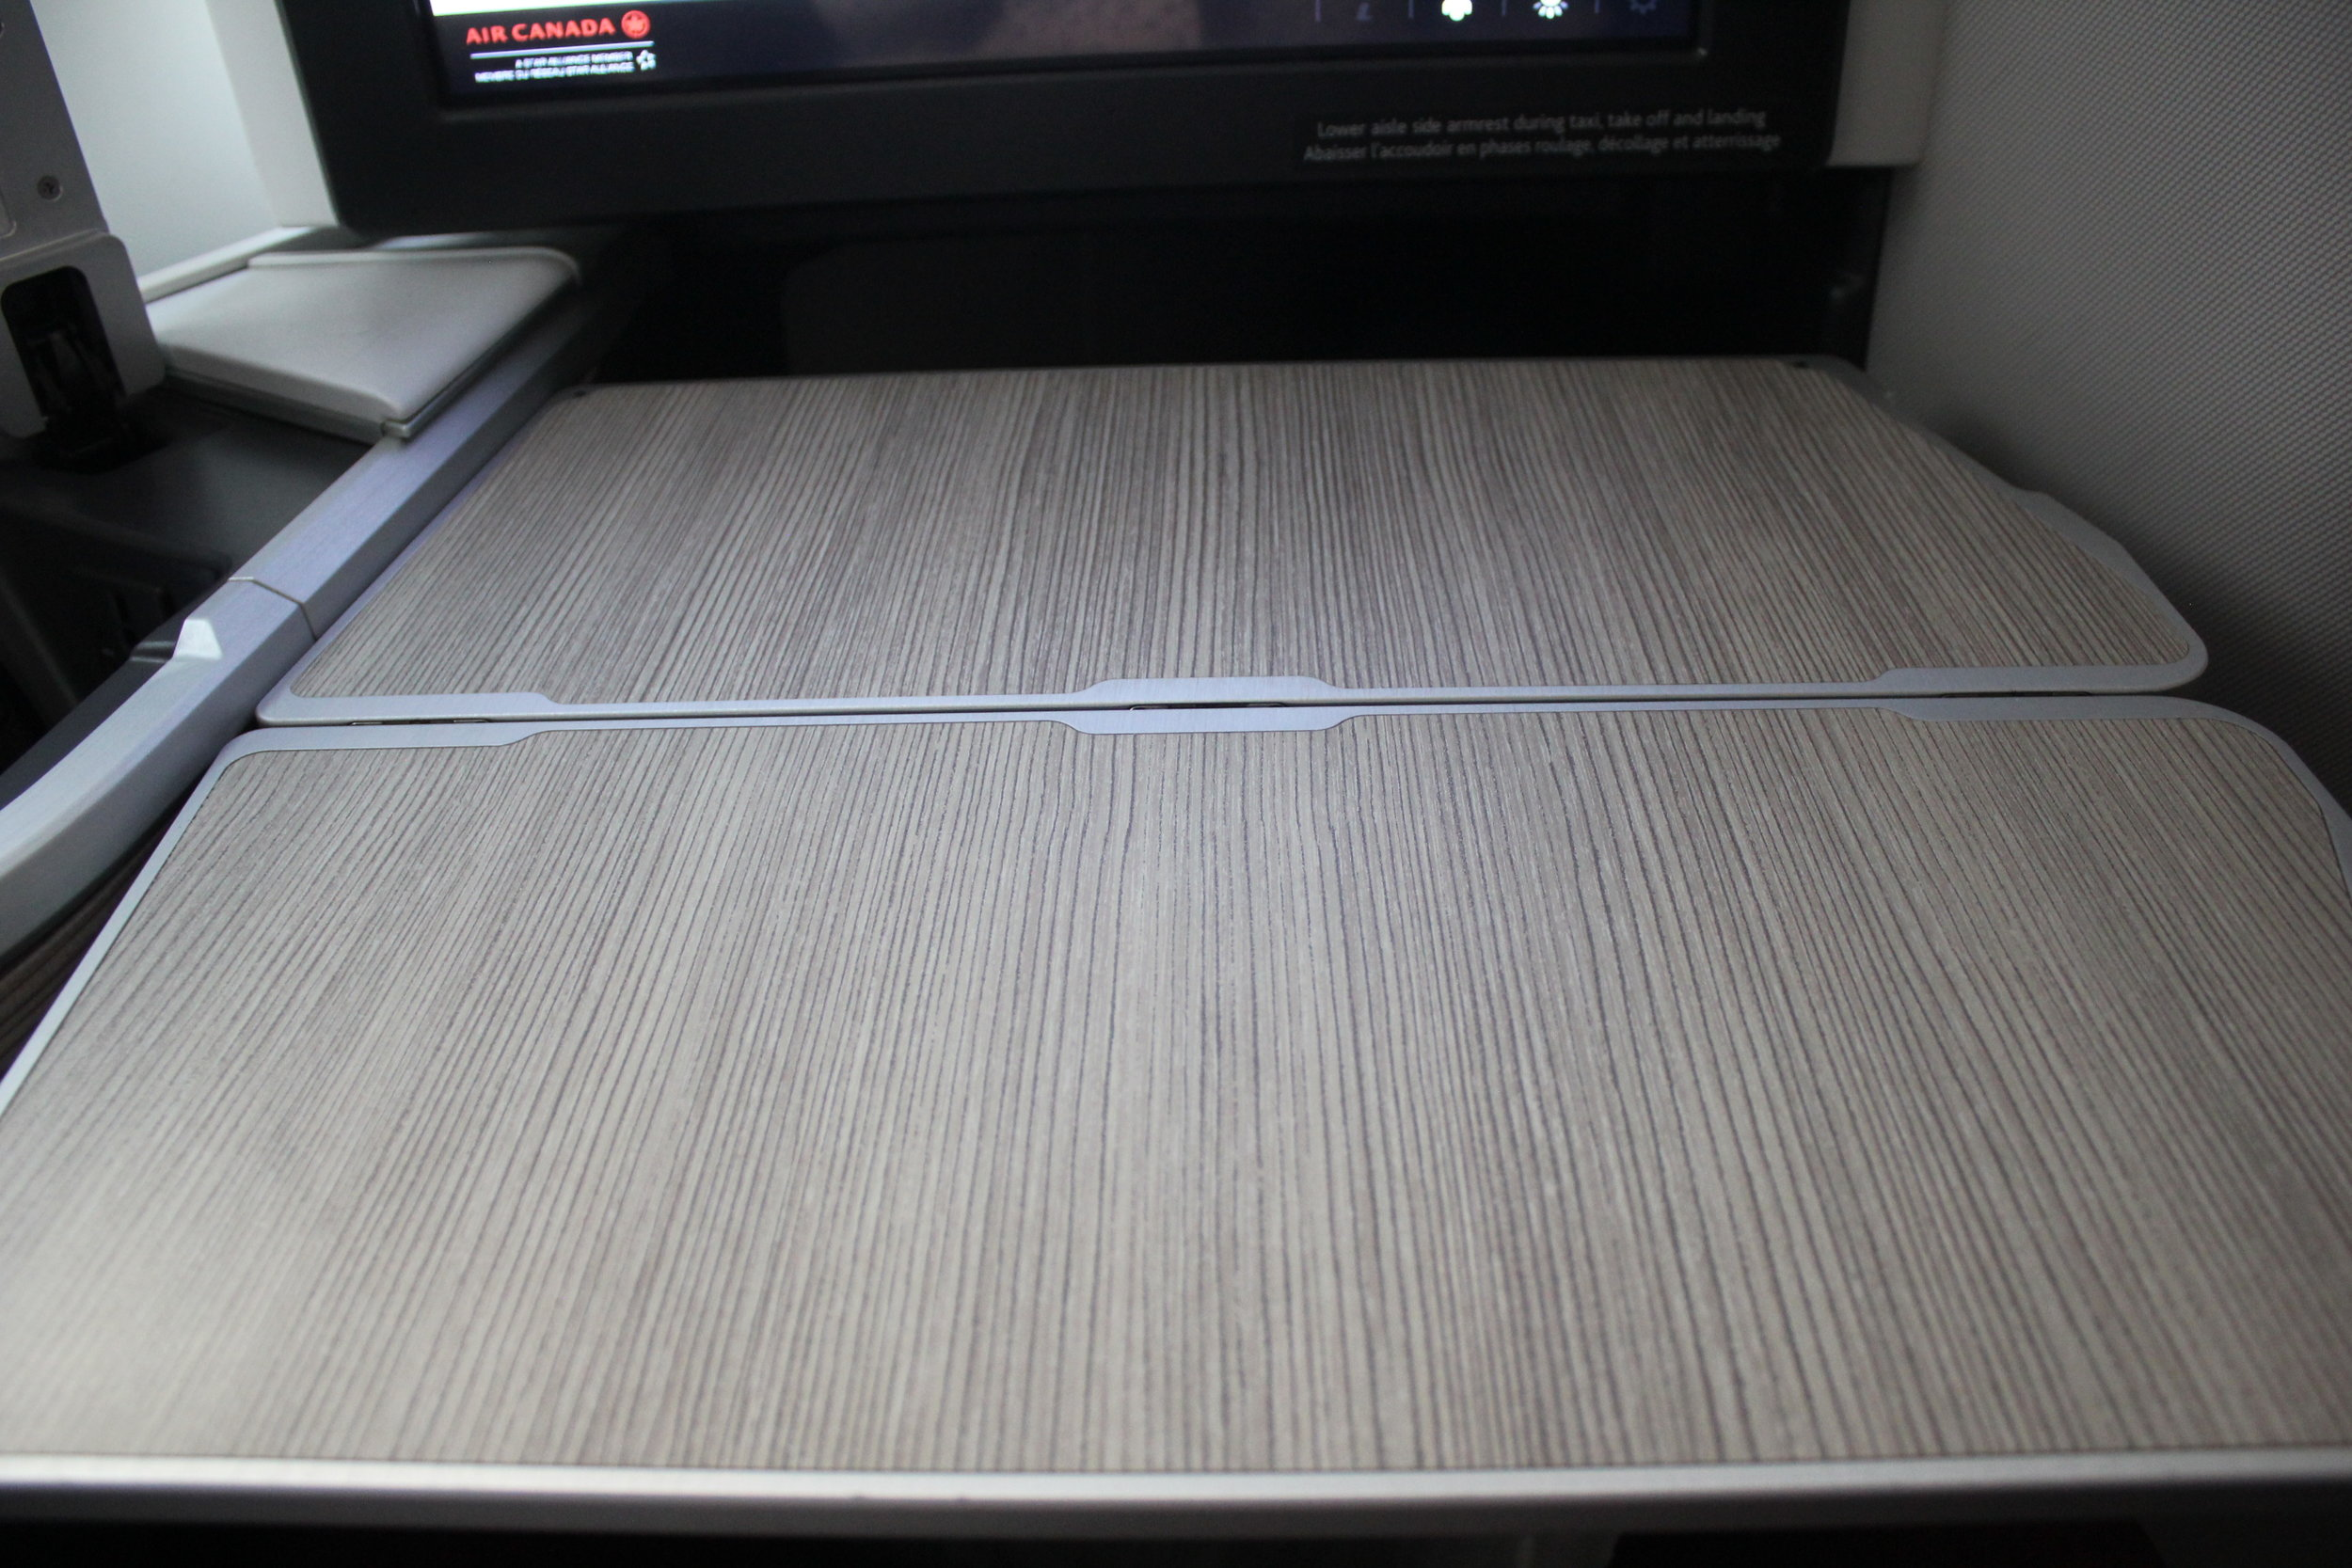 Air Canada business class – Tray table folded out